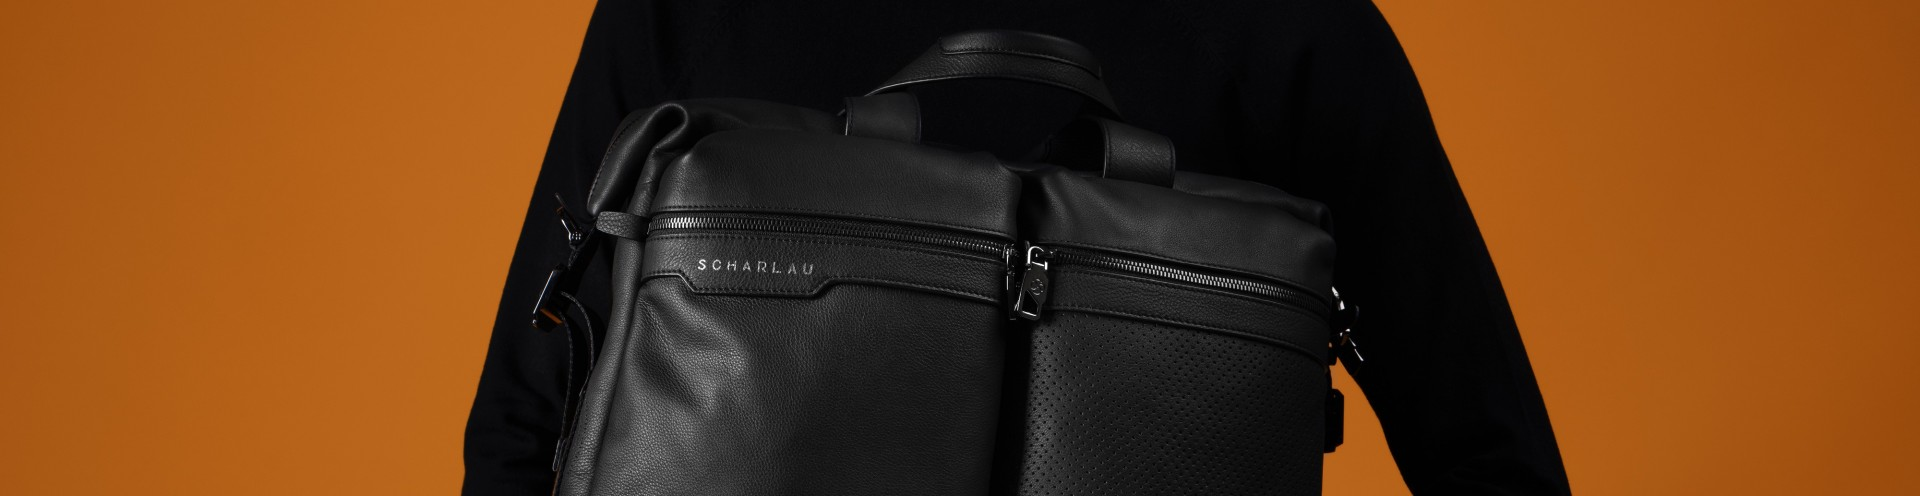 Men's Leather or Nylon Personalized Briefbags